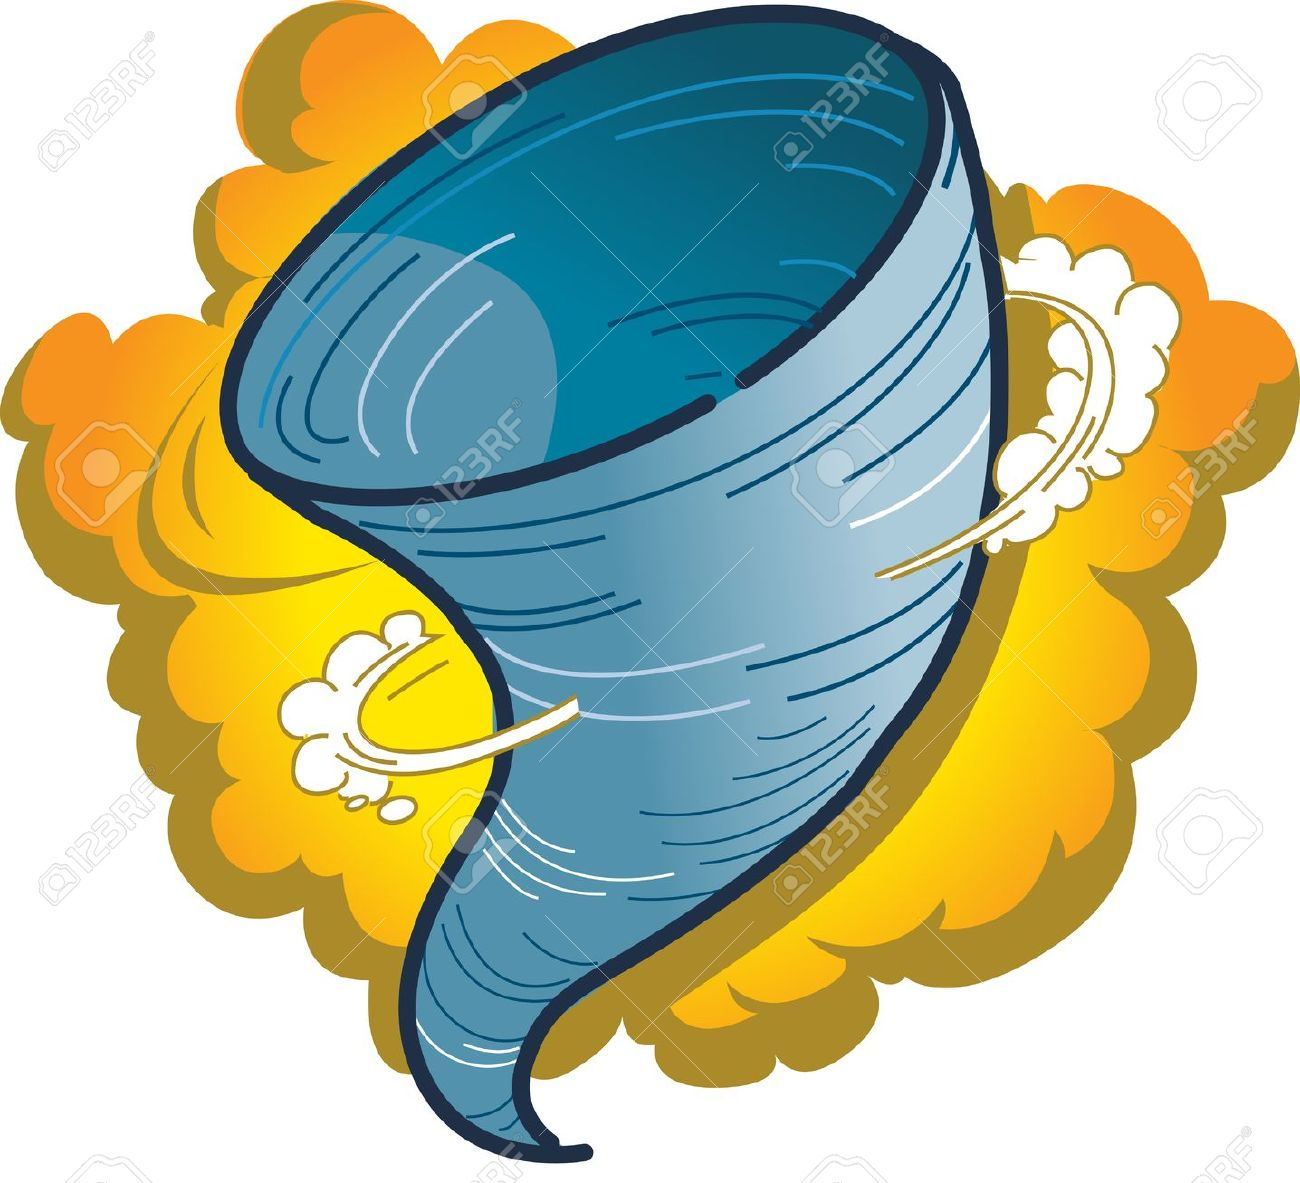 free animated tornado clipart - photo #40